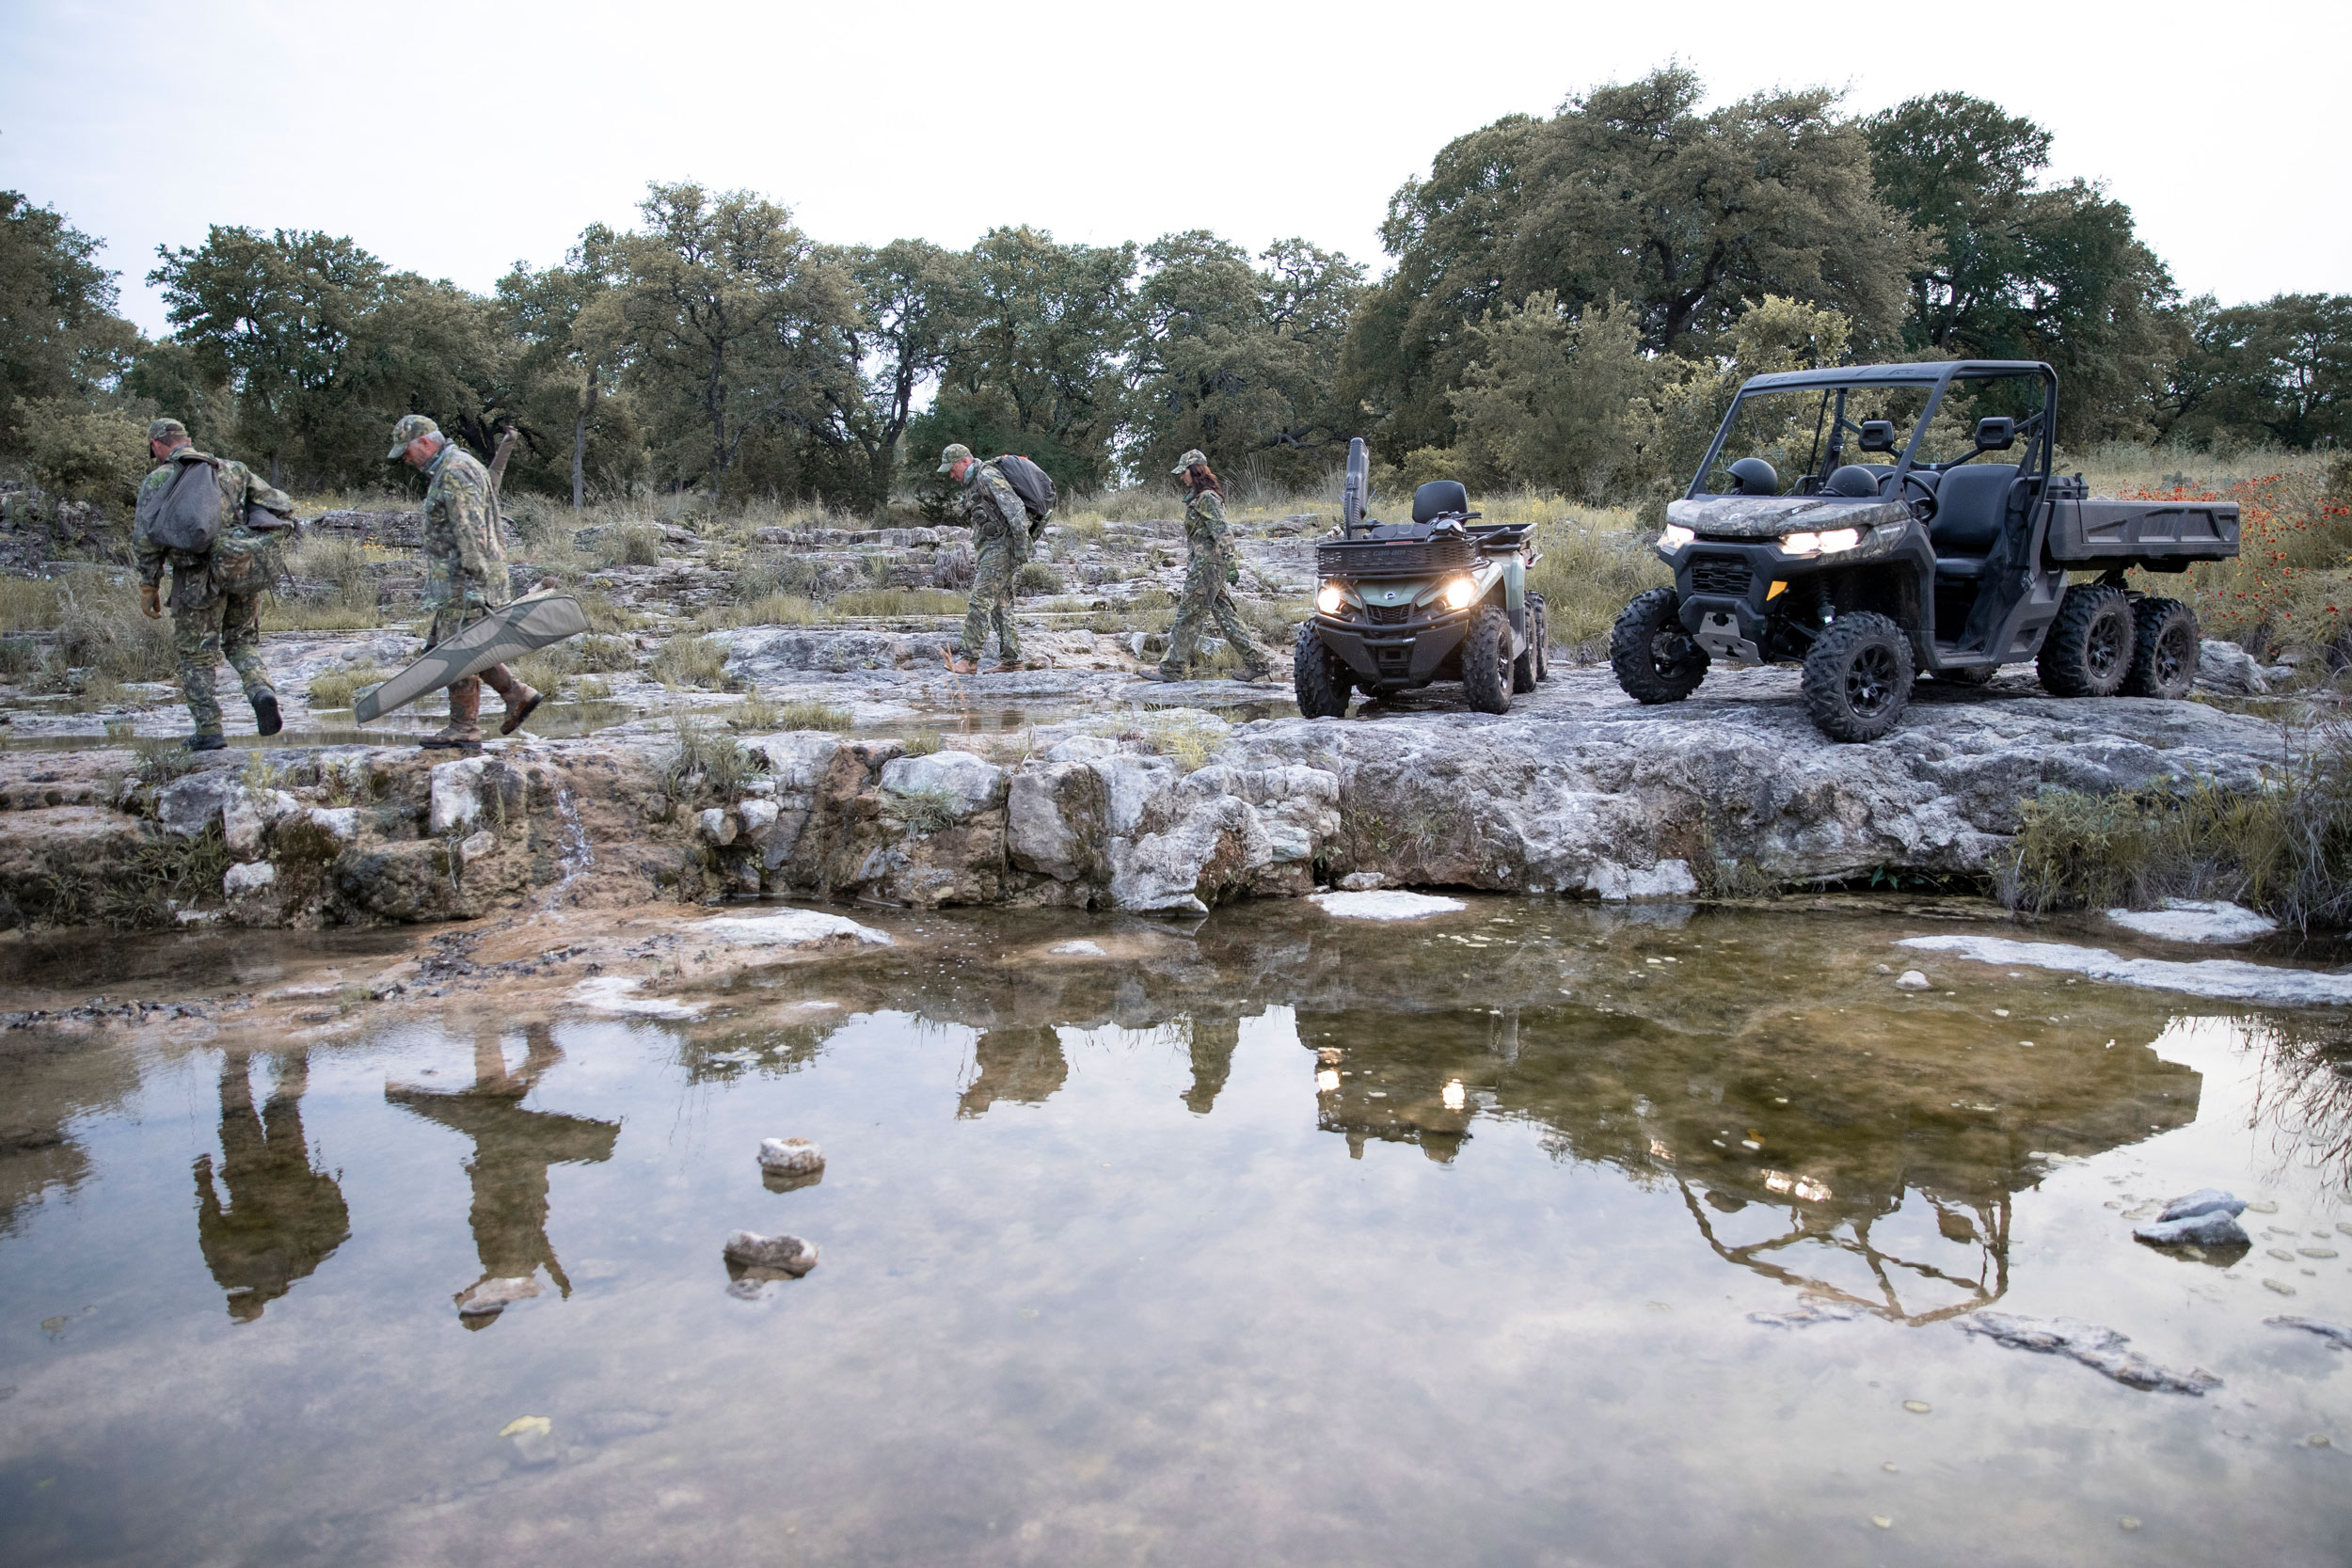 Choosing the Best ATV or Side-by-Side/UTV for Hunting